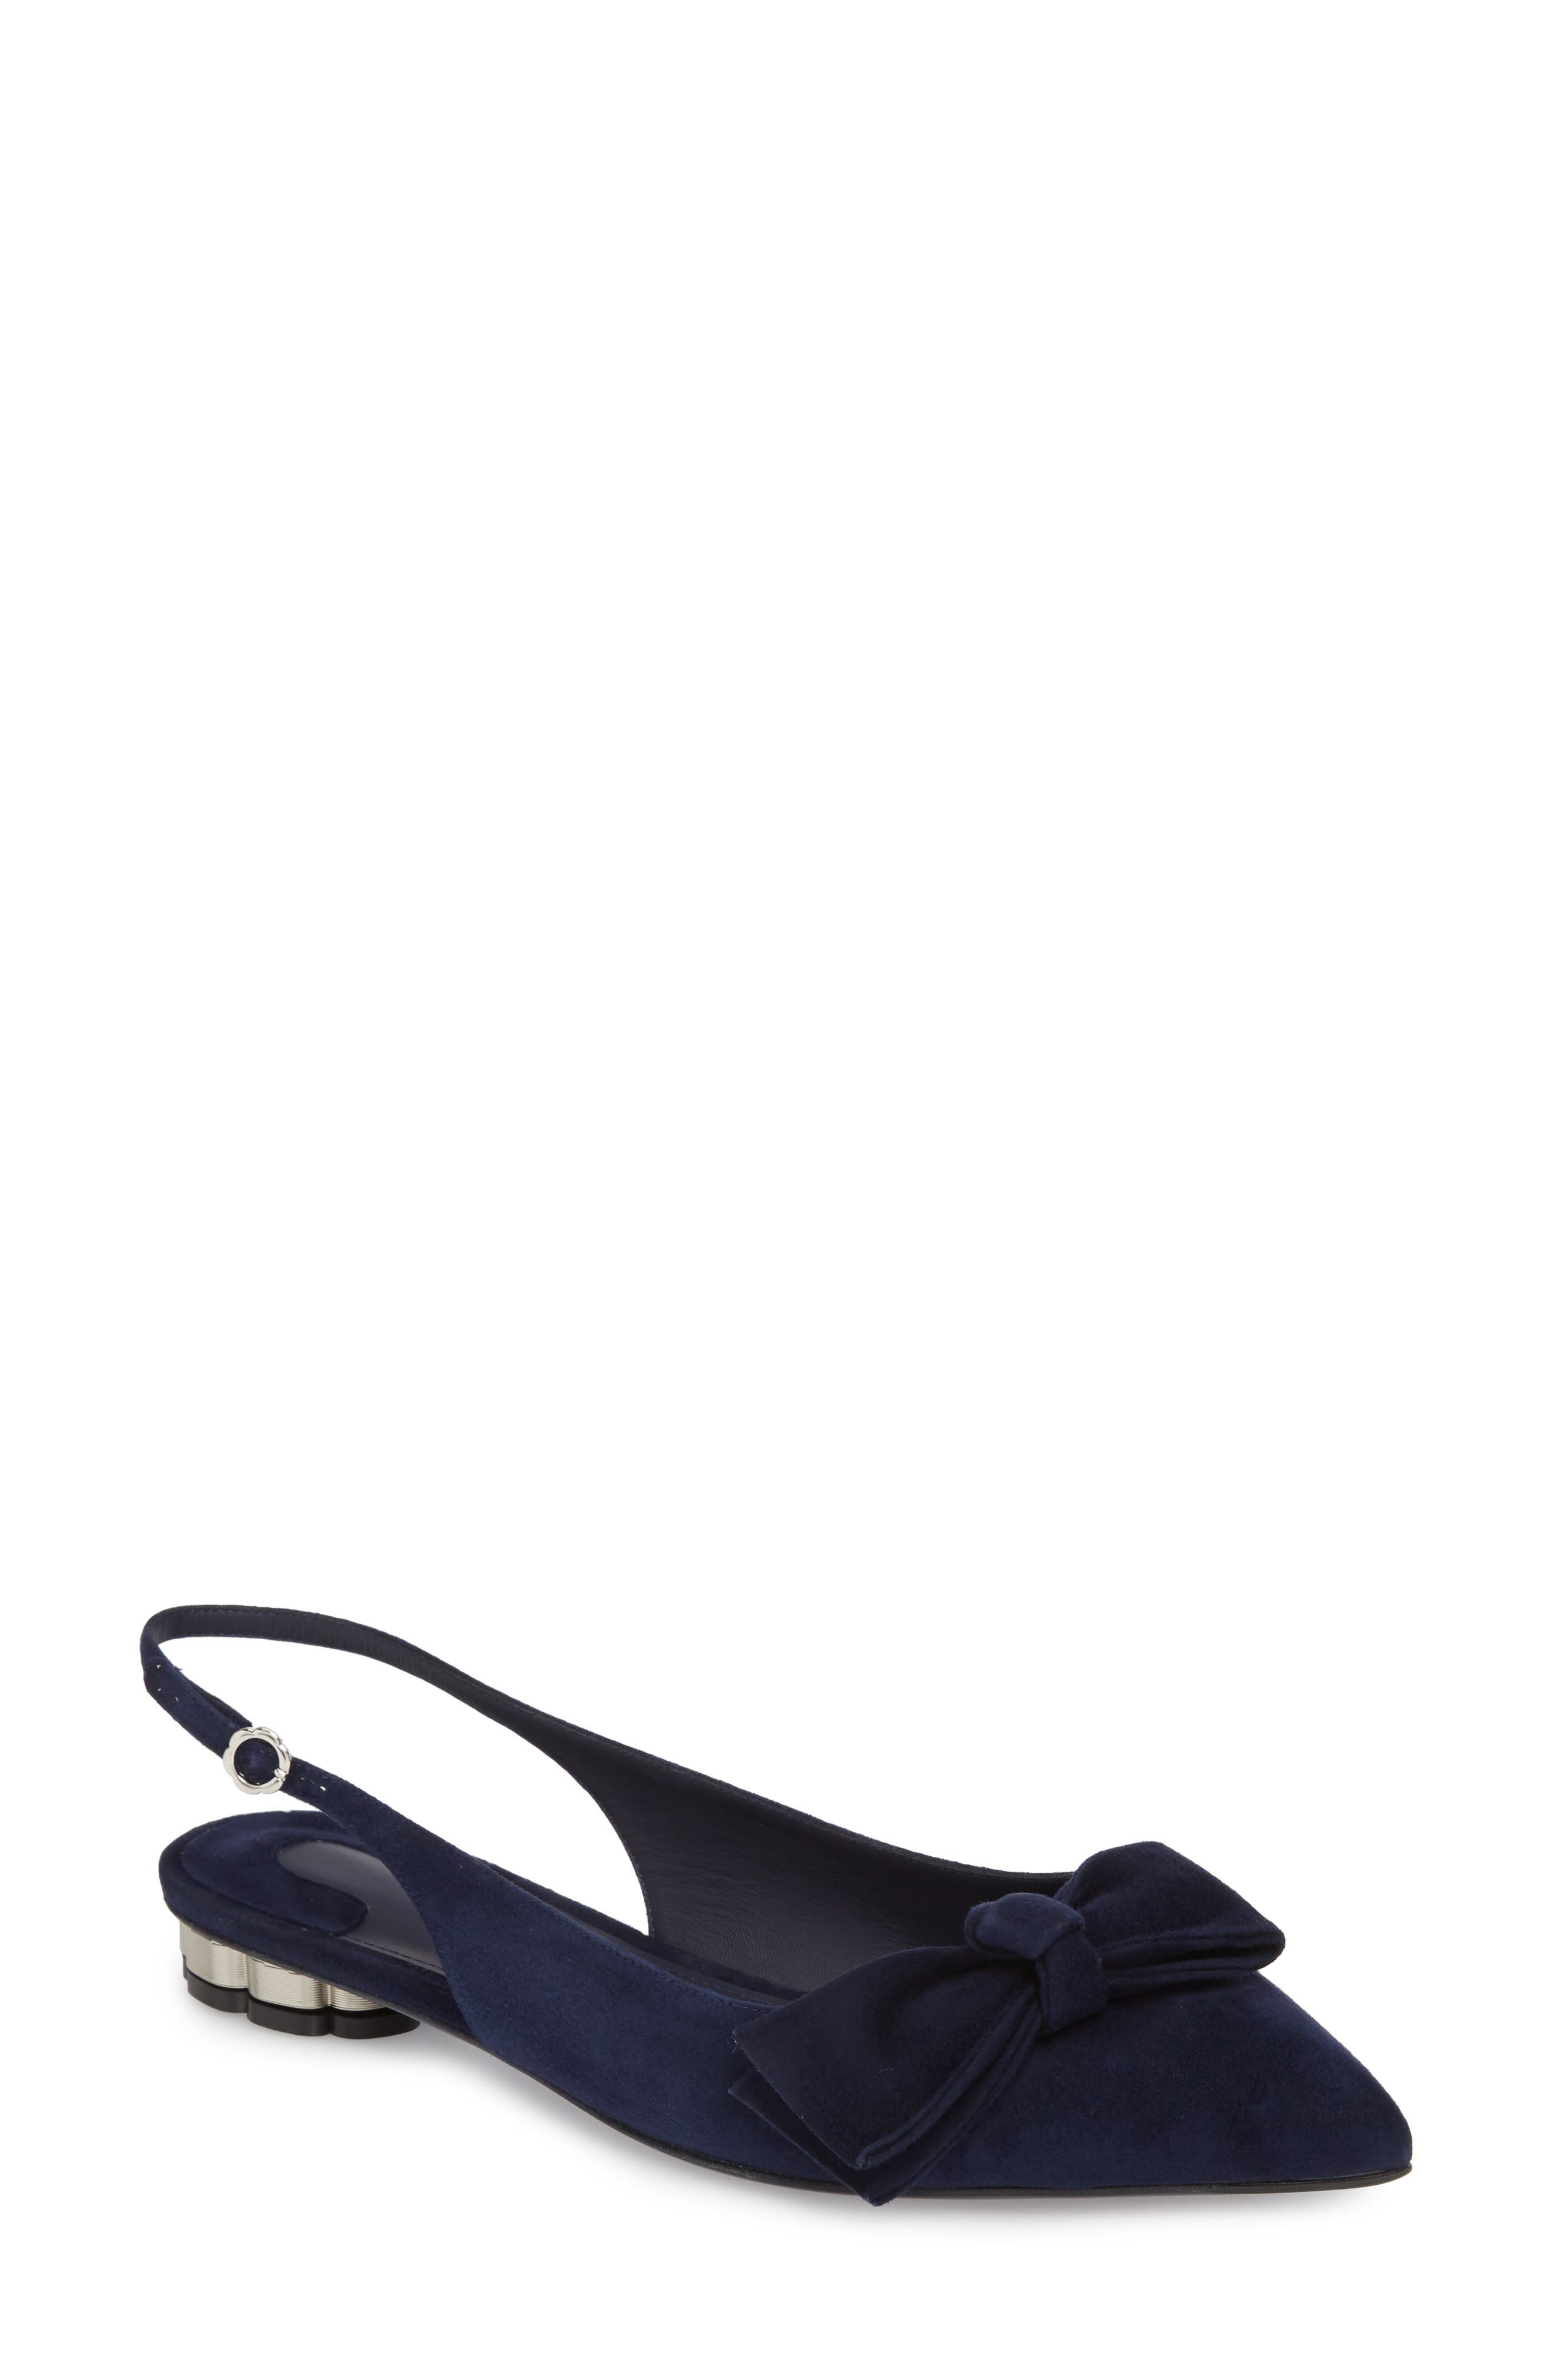 Aulla Slingback Flat,                         Main,                         color, Navy